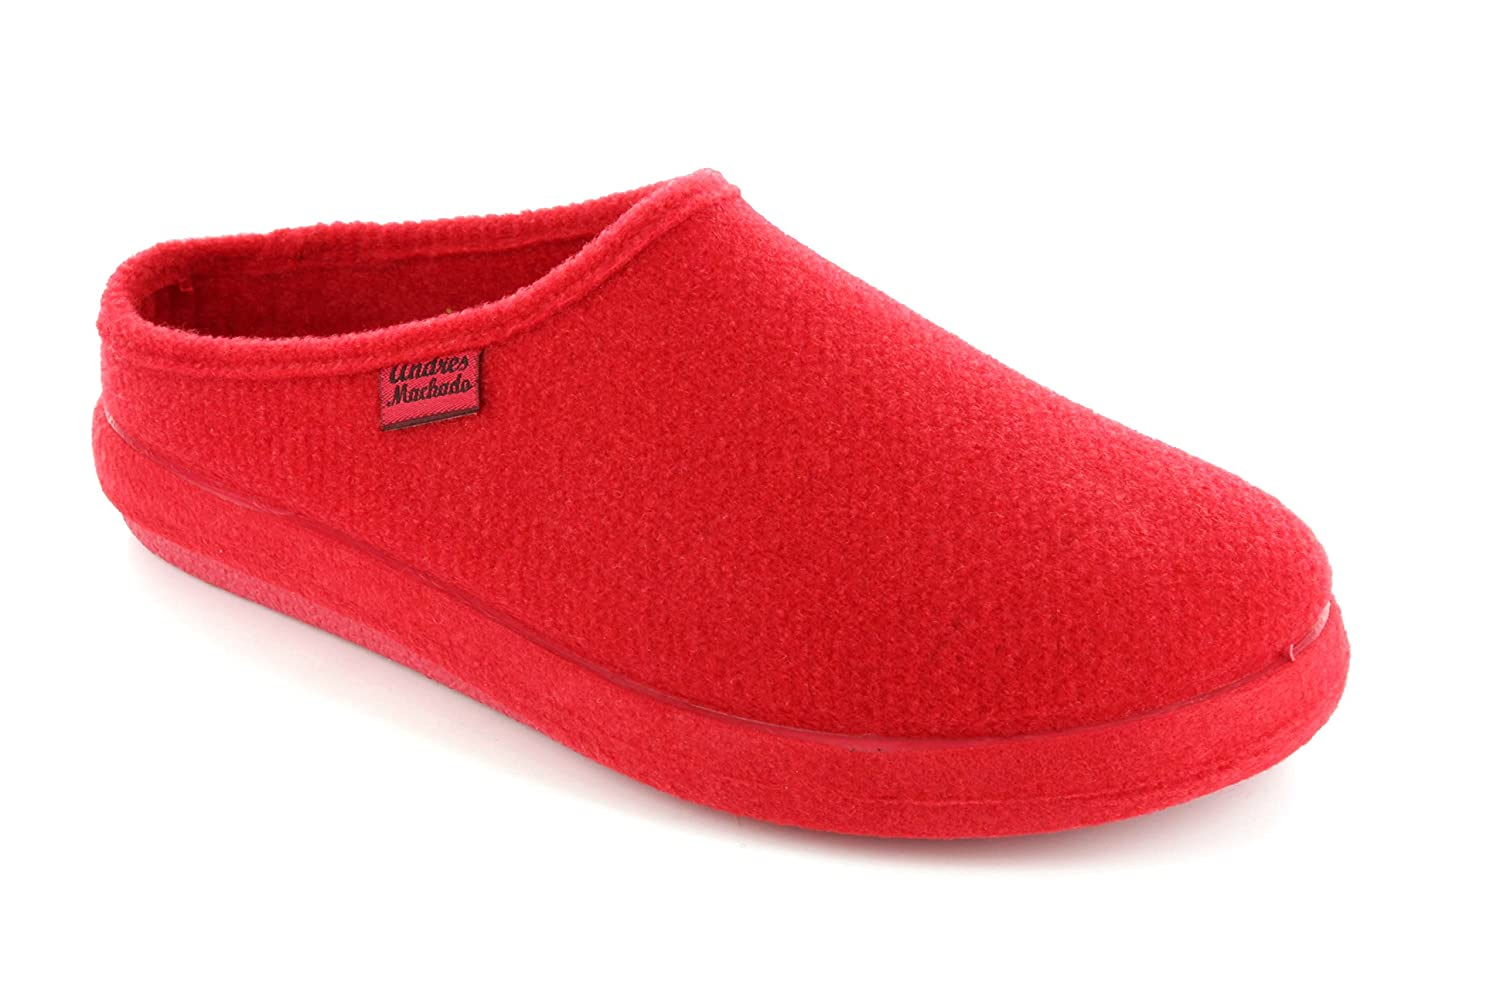 Andres Machado.AM001.AUTHÉNTIQUES Pointures. chaussons Grandes MADE IN 11653 SPAIN Unisex.Petites et Grandes Pointures. 26/50 Rouge 41f8053 - piero.space